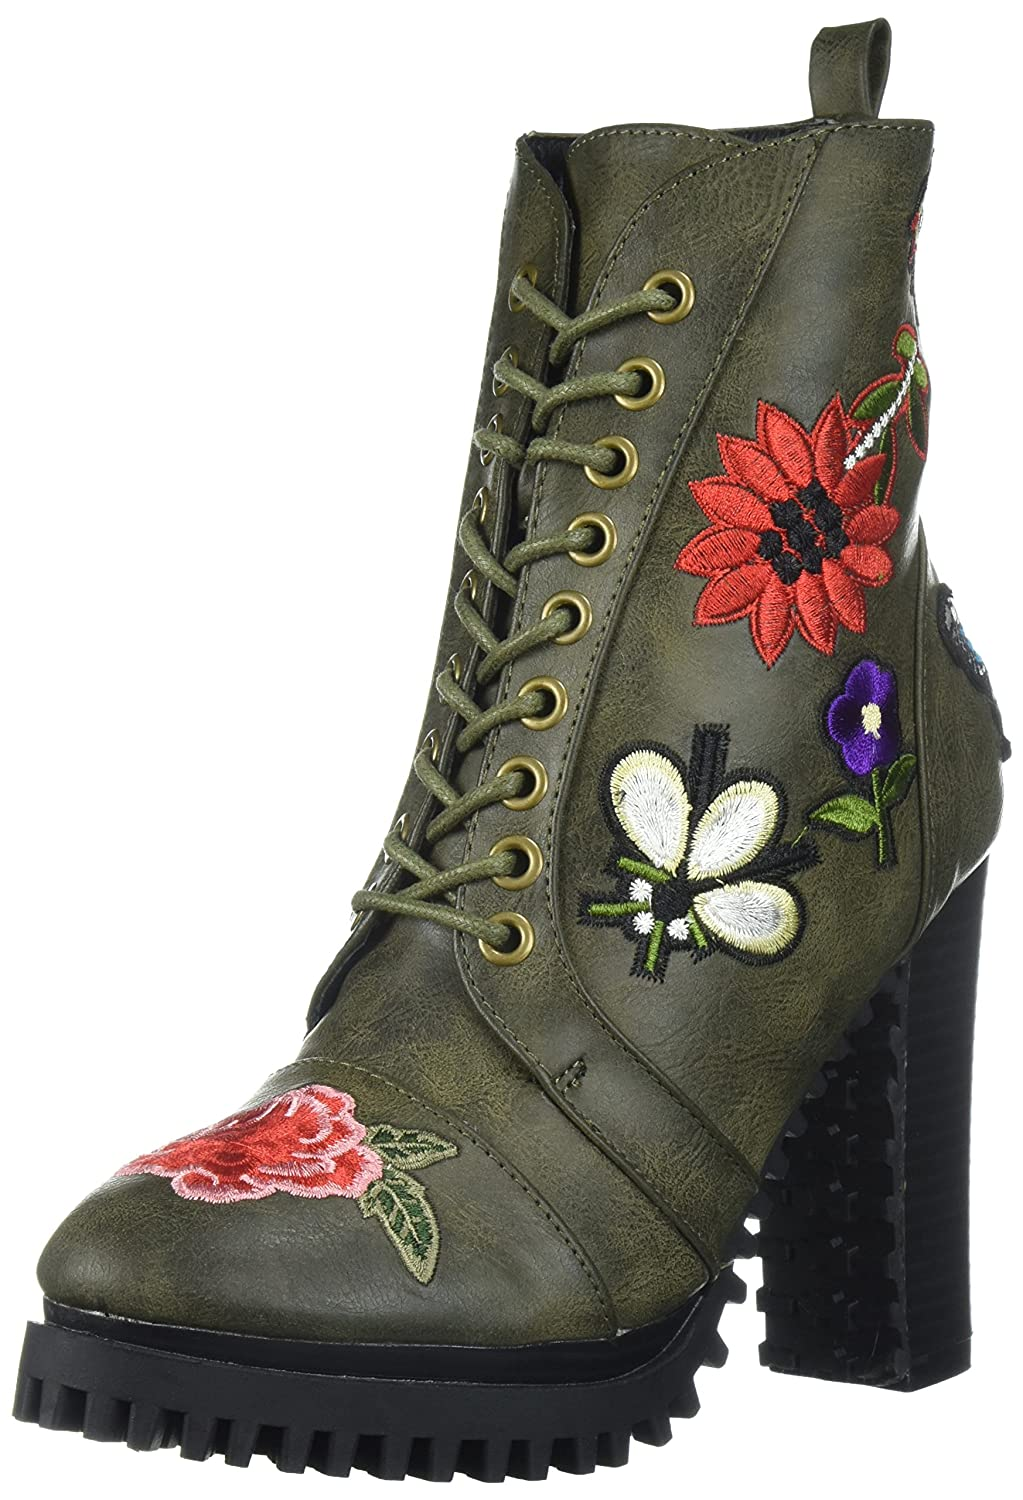 Penny Loves Kenny Women's Frank Combat Boot B072HFVWBB 8 W US|Green